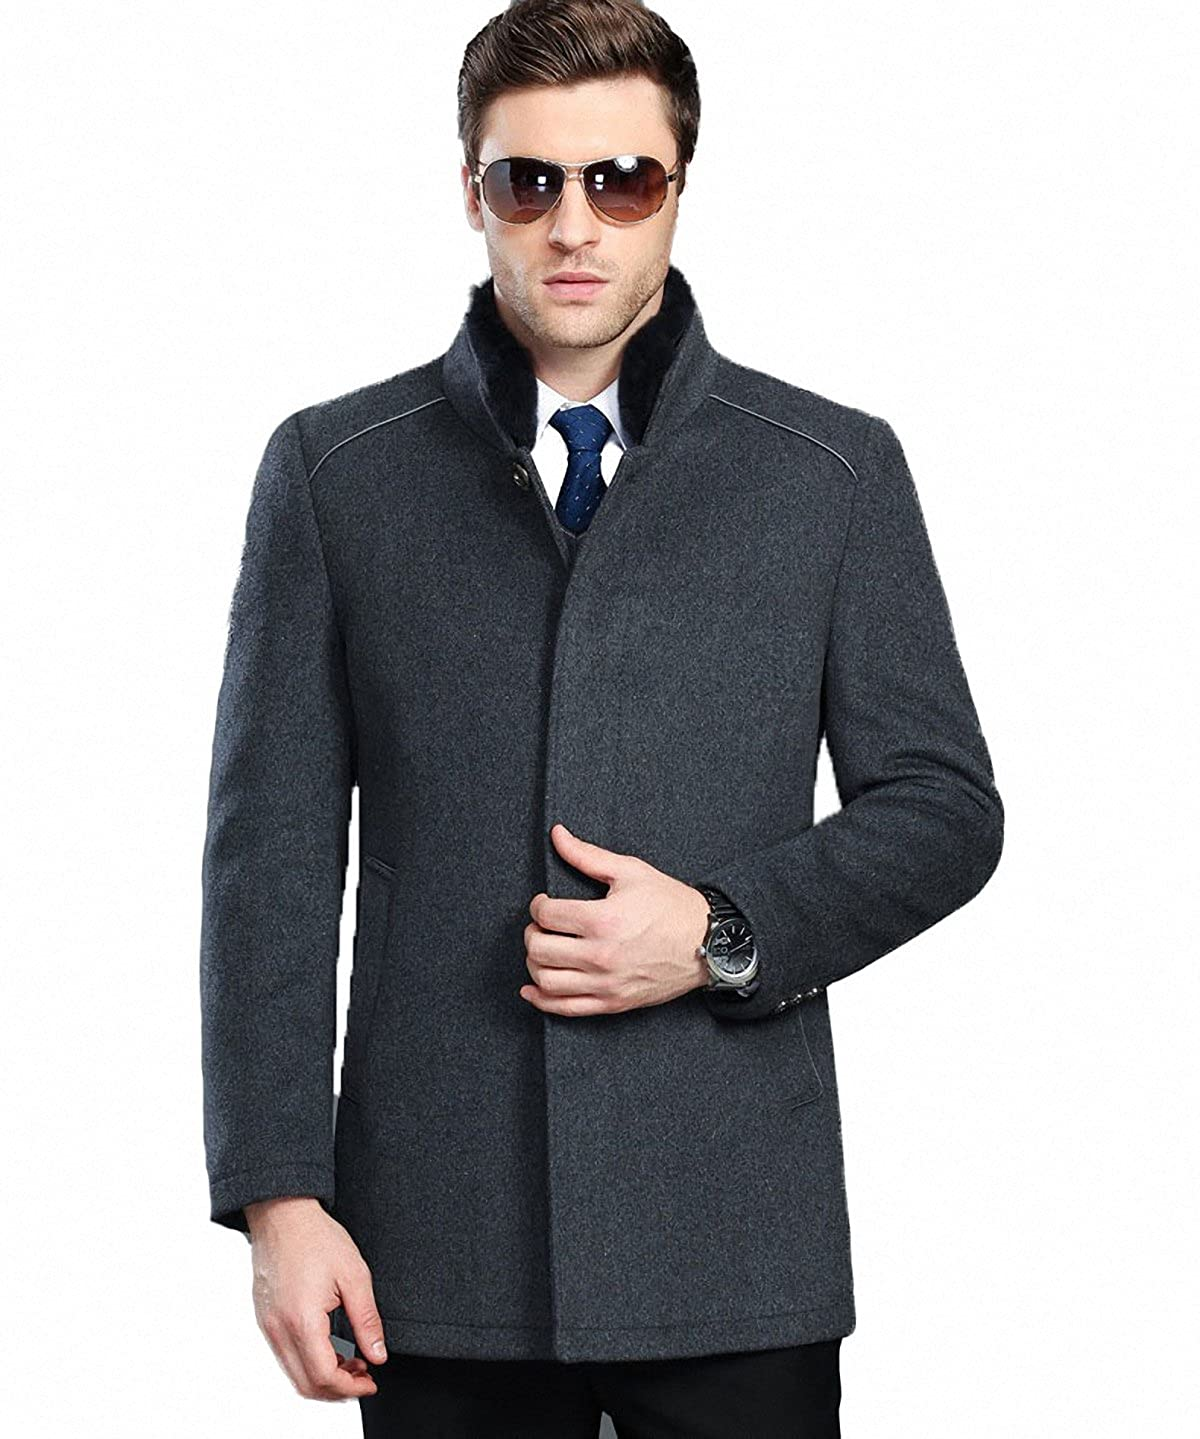 FASHINTY Men's Casual Style Single Breasted Stand Collar Wool Coat #178 FMDYC00178-P